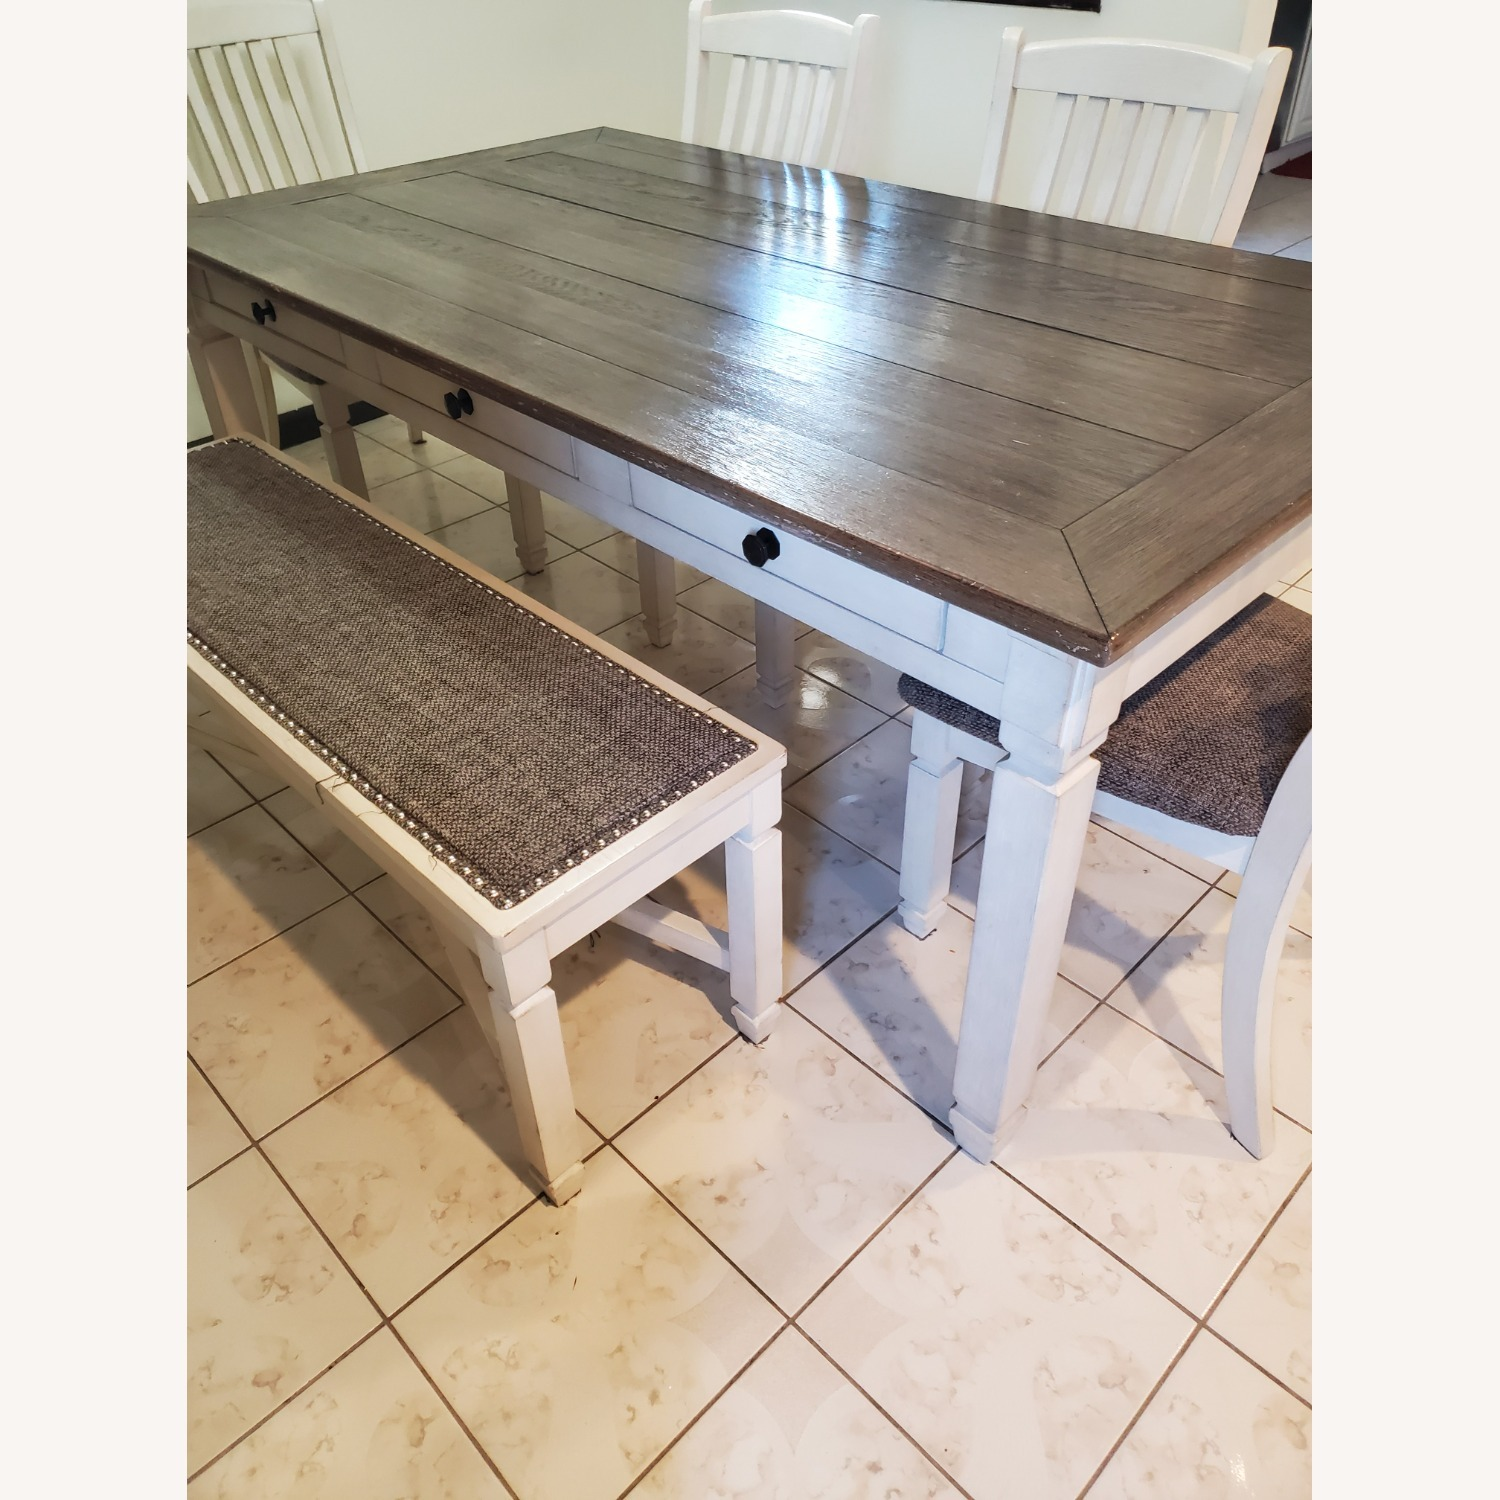 New Rustics Ashley Home Dining Table Seats 7 - image-1